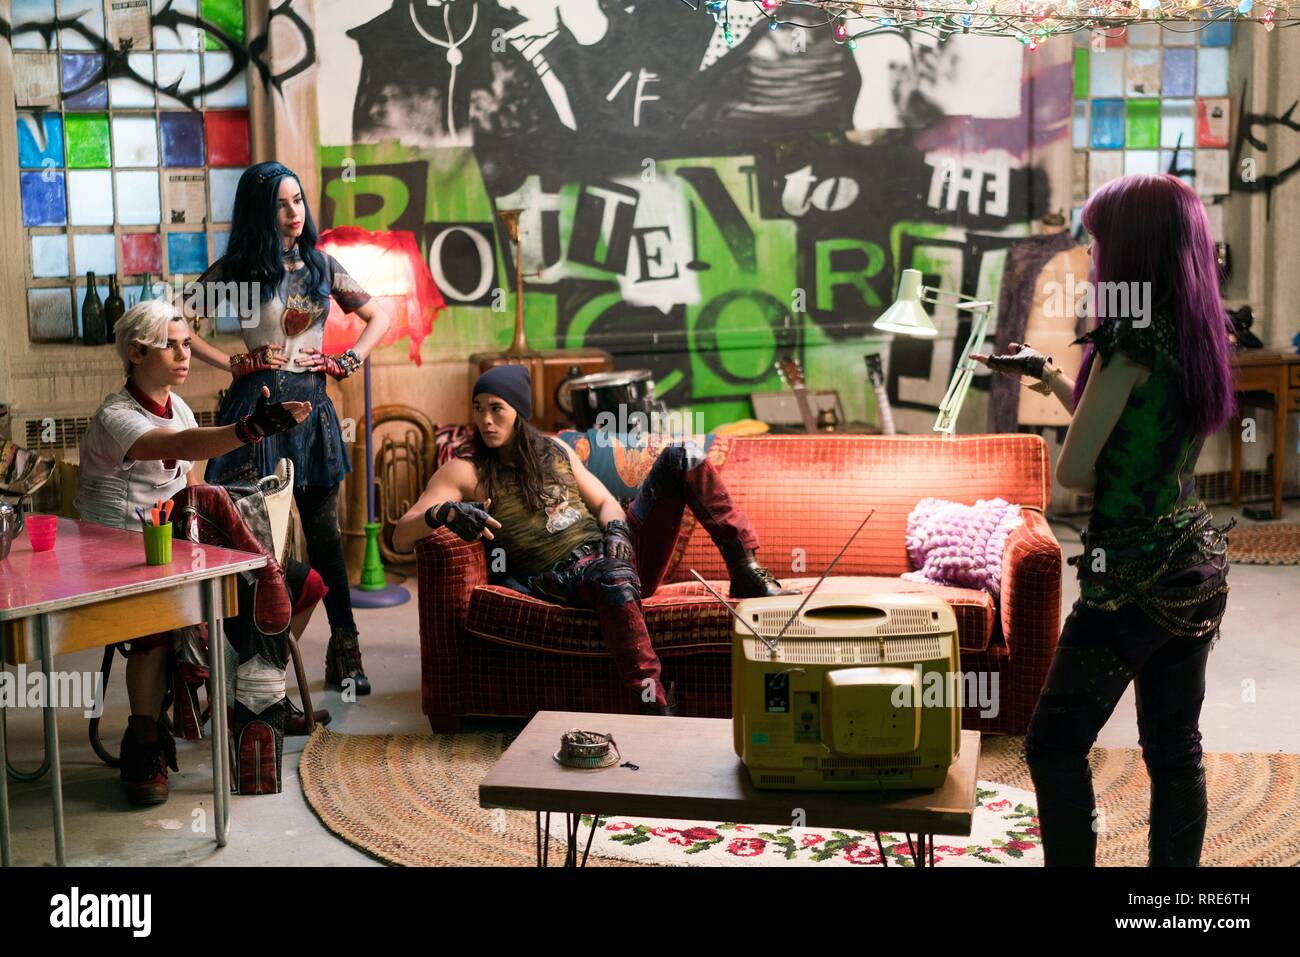 DESCENDANTS 2, CAMERON BOYCE, SOFIA CARSON, BOOBOO STEWART , DOVE CAMERON, 2017 Stock Photo